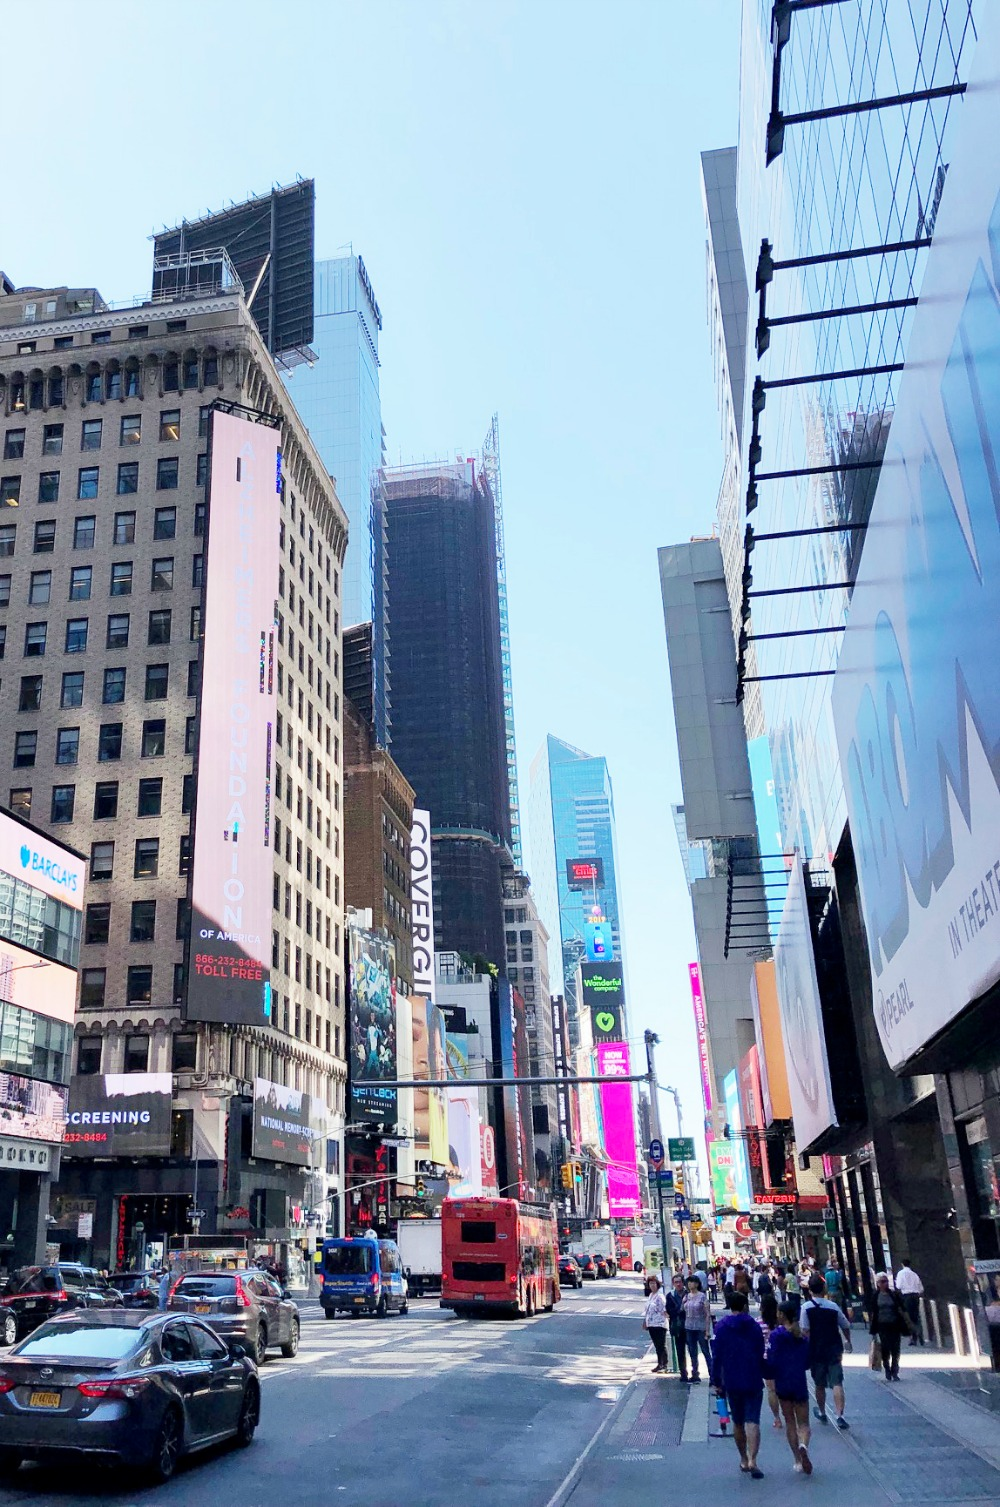 NYC Photo Diary I Time Square in Midtown #Travel #TravelBlogger